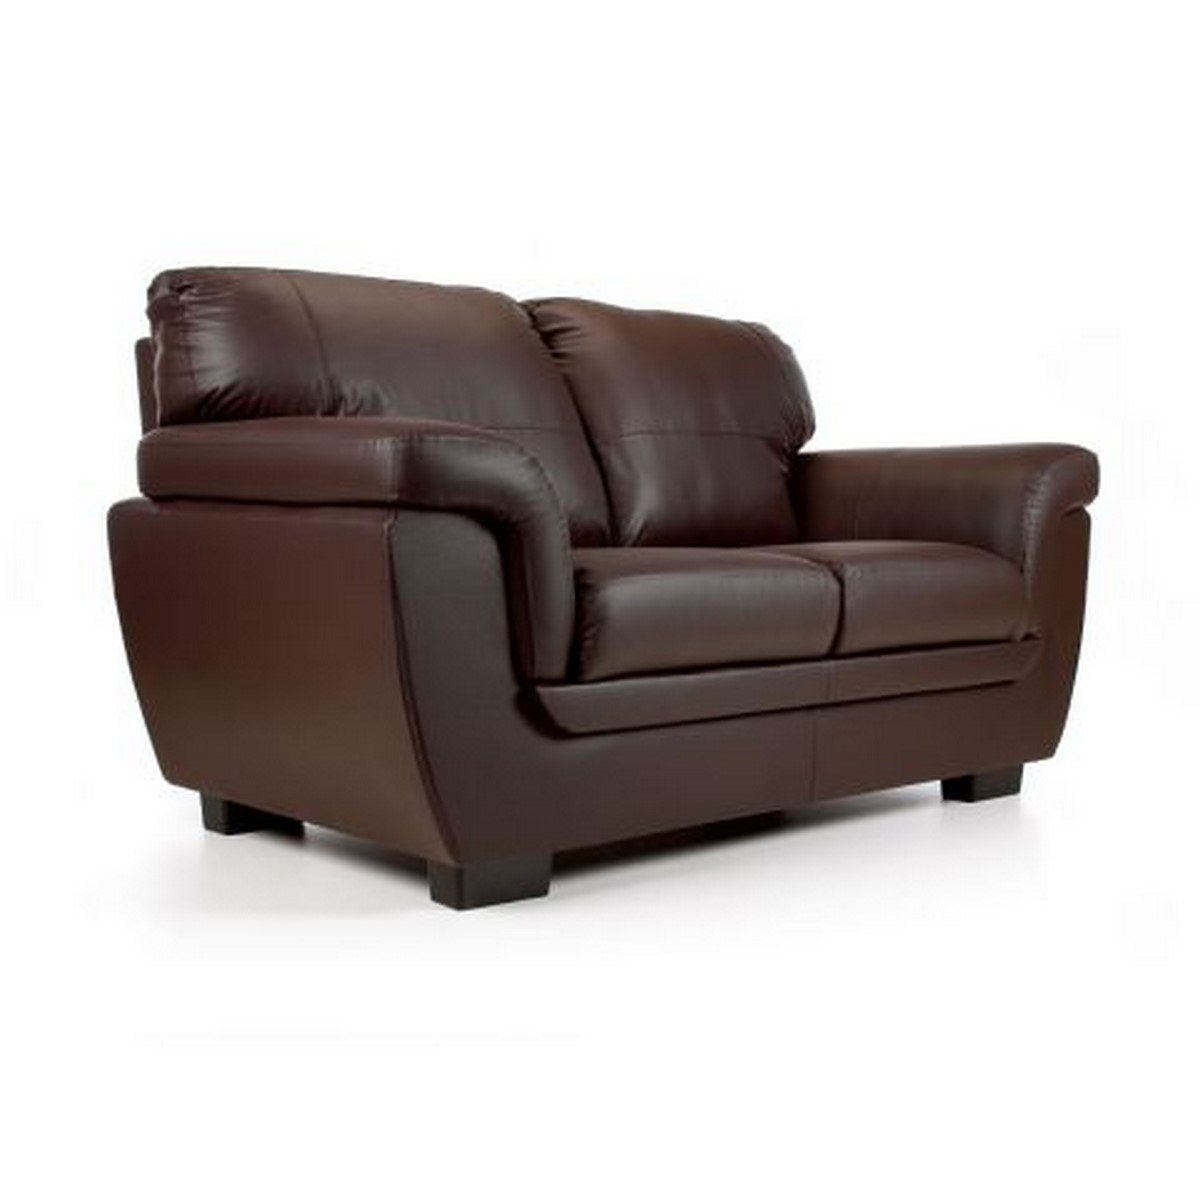 Canape Cuir Marron 2 Places Deco In Paris 9 Canape 2 Places Marron Katty Katty 2pl